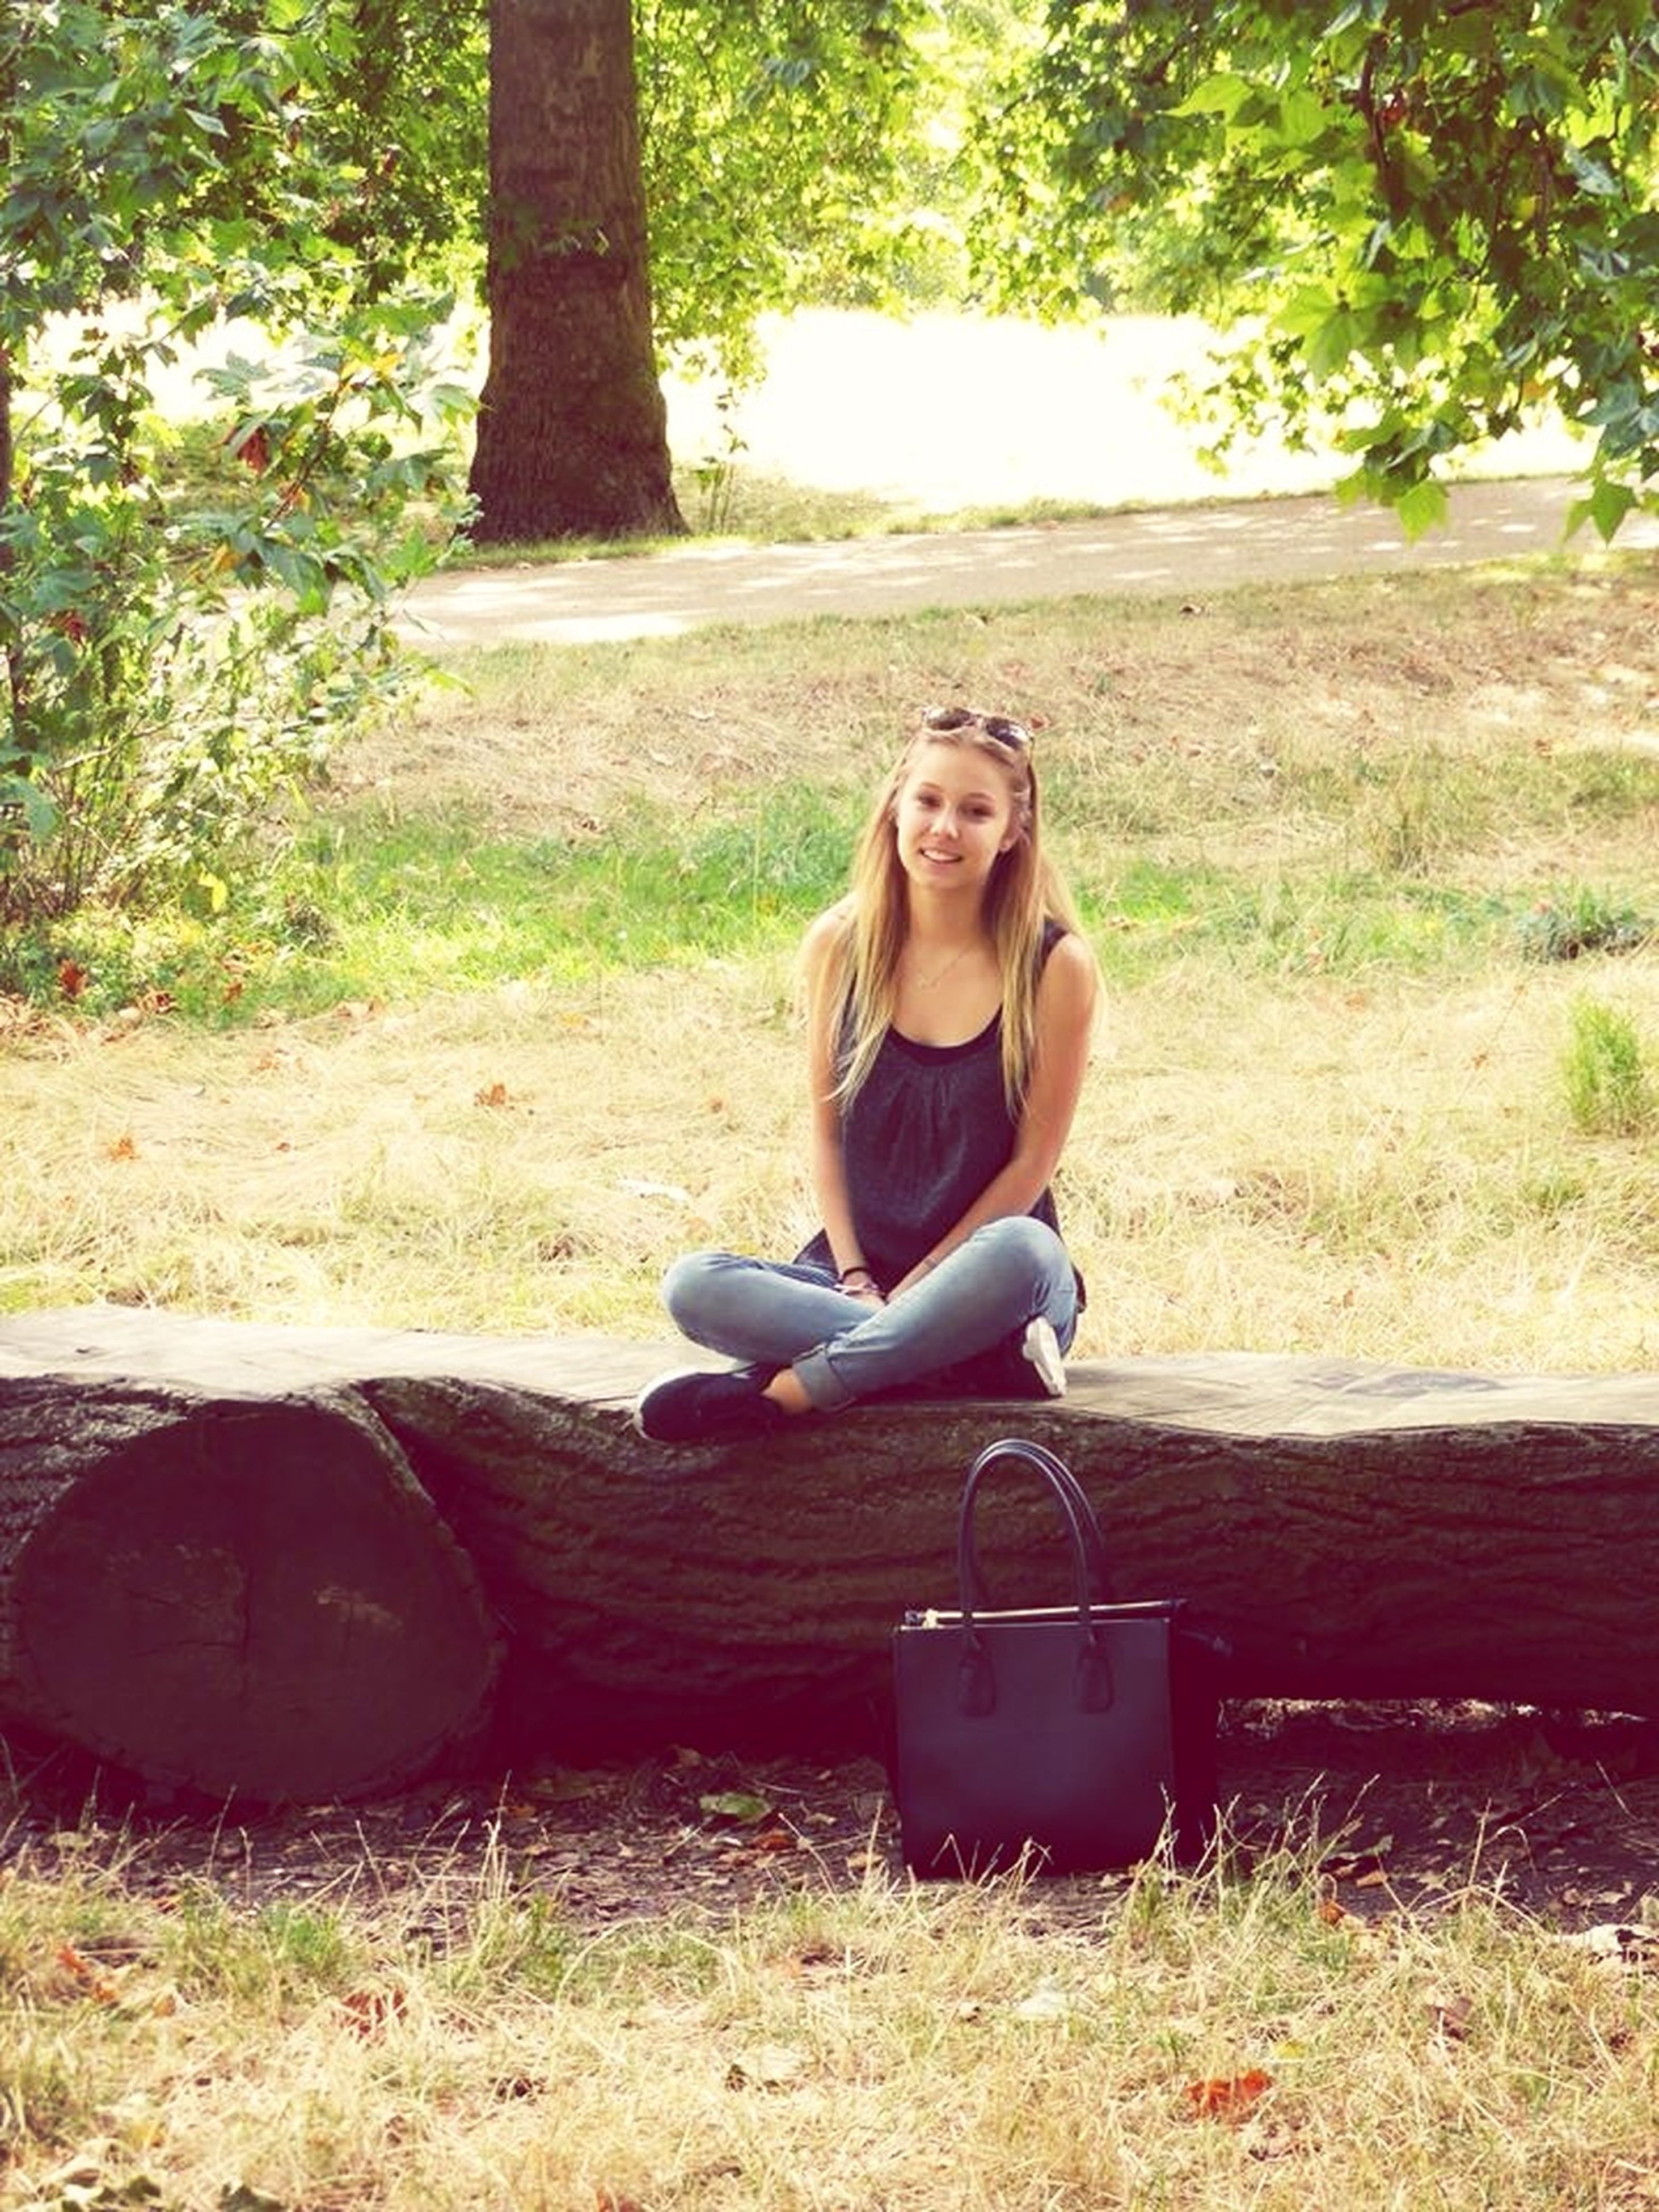 person, sitting, young adult, looking at camera, portrait, casual clothing, lifestyles, leisure activity, smiling, tree, front view, relaxation, happiness, young women, full length, sunglasses, park - man made space